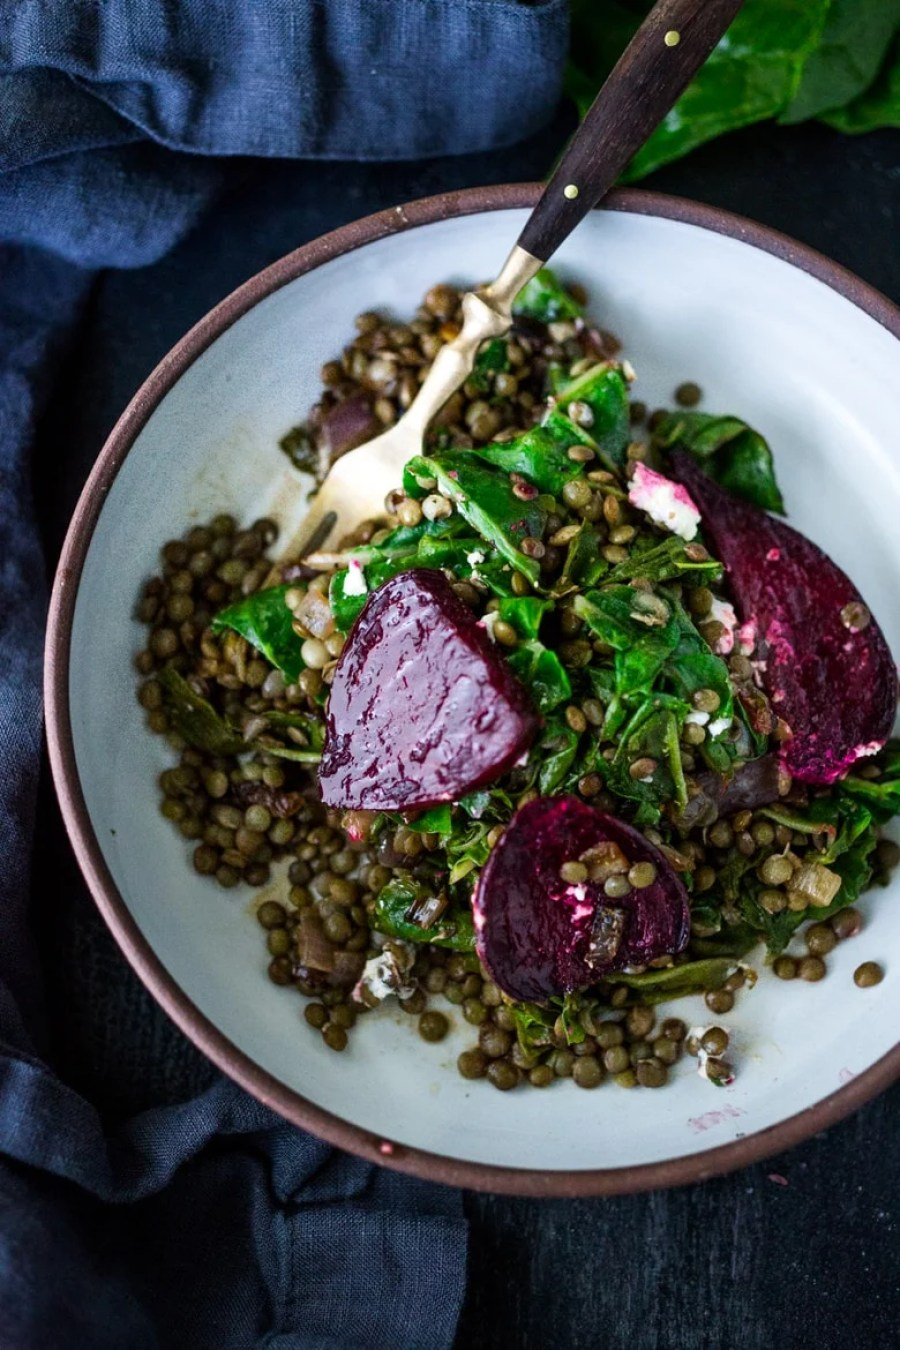 Warm Lentils with wilted chard, roasted beets, goat cheese and spring herbs. A simple tasty vegetarian meal! #halfcuphabit #justaddpulses | www.feastingathome.com